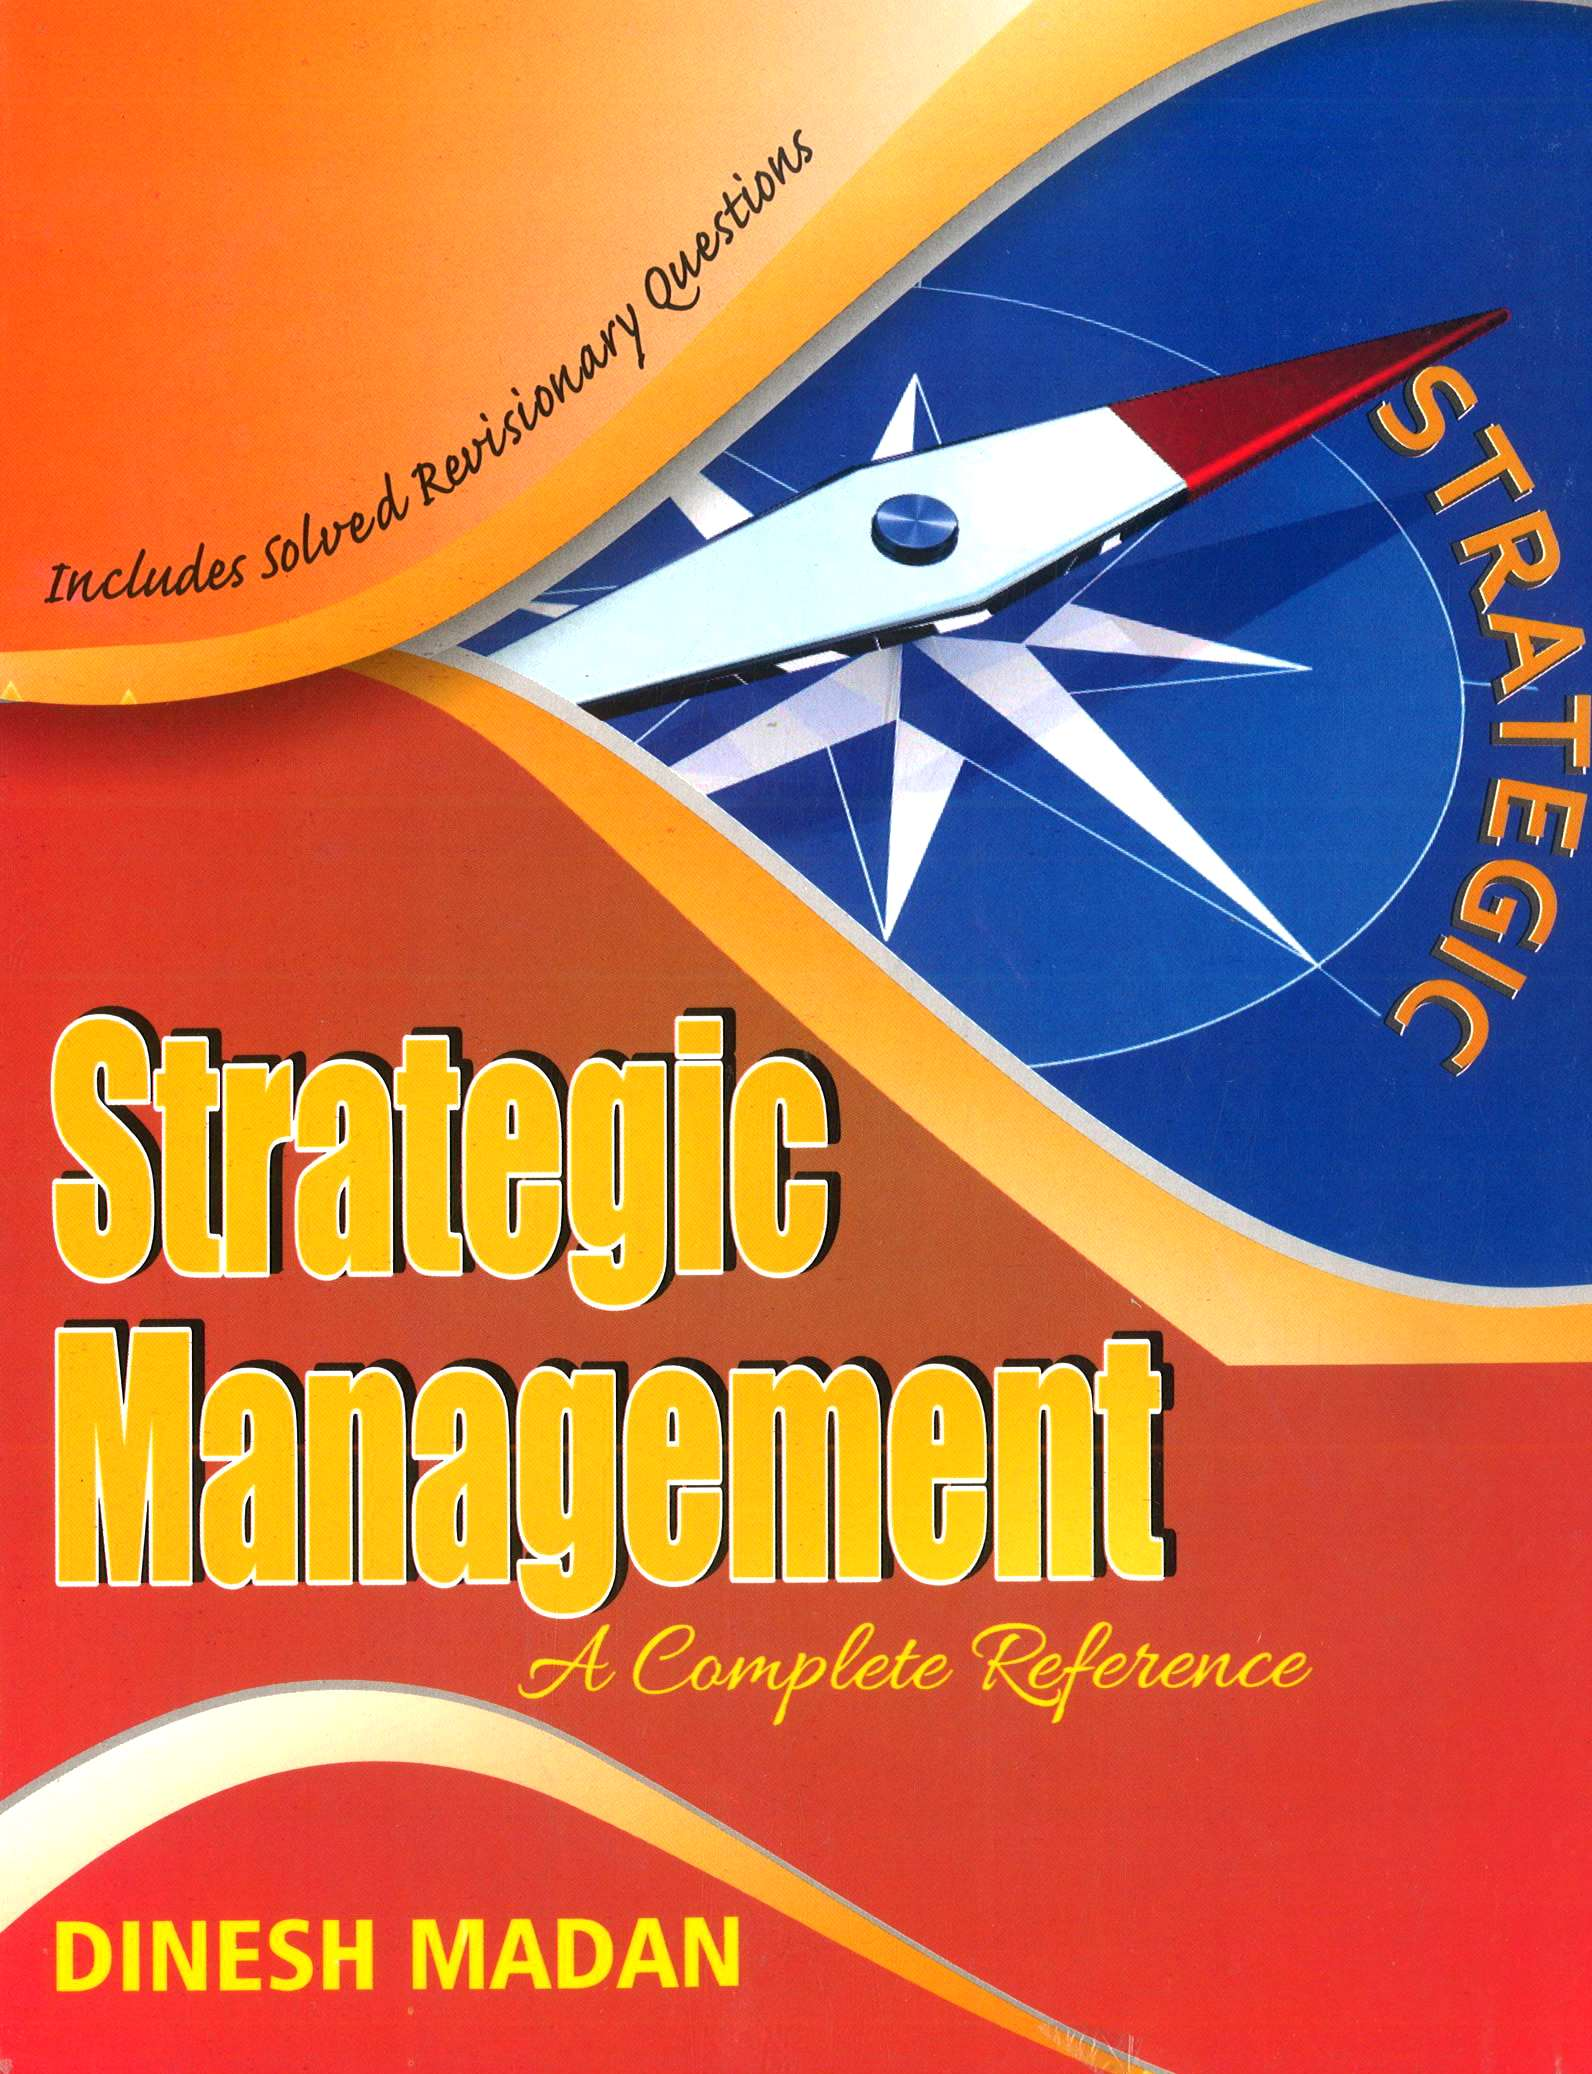 Pooja Law House A Complete Reference Strategic Management For CA IPCC By Dinesh Madan for May 2018 (Pooja Law House Publishing) Edition  Jan 2018